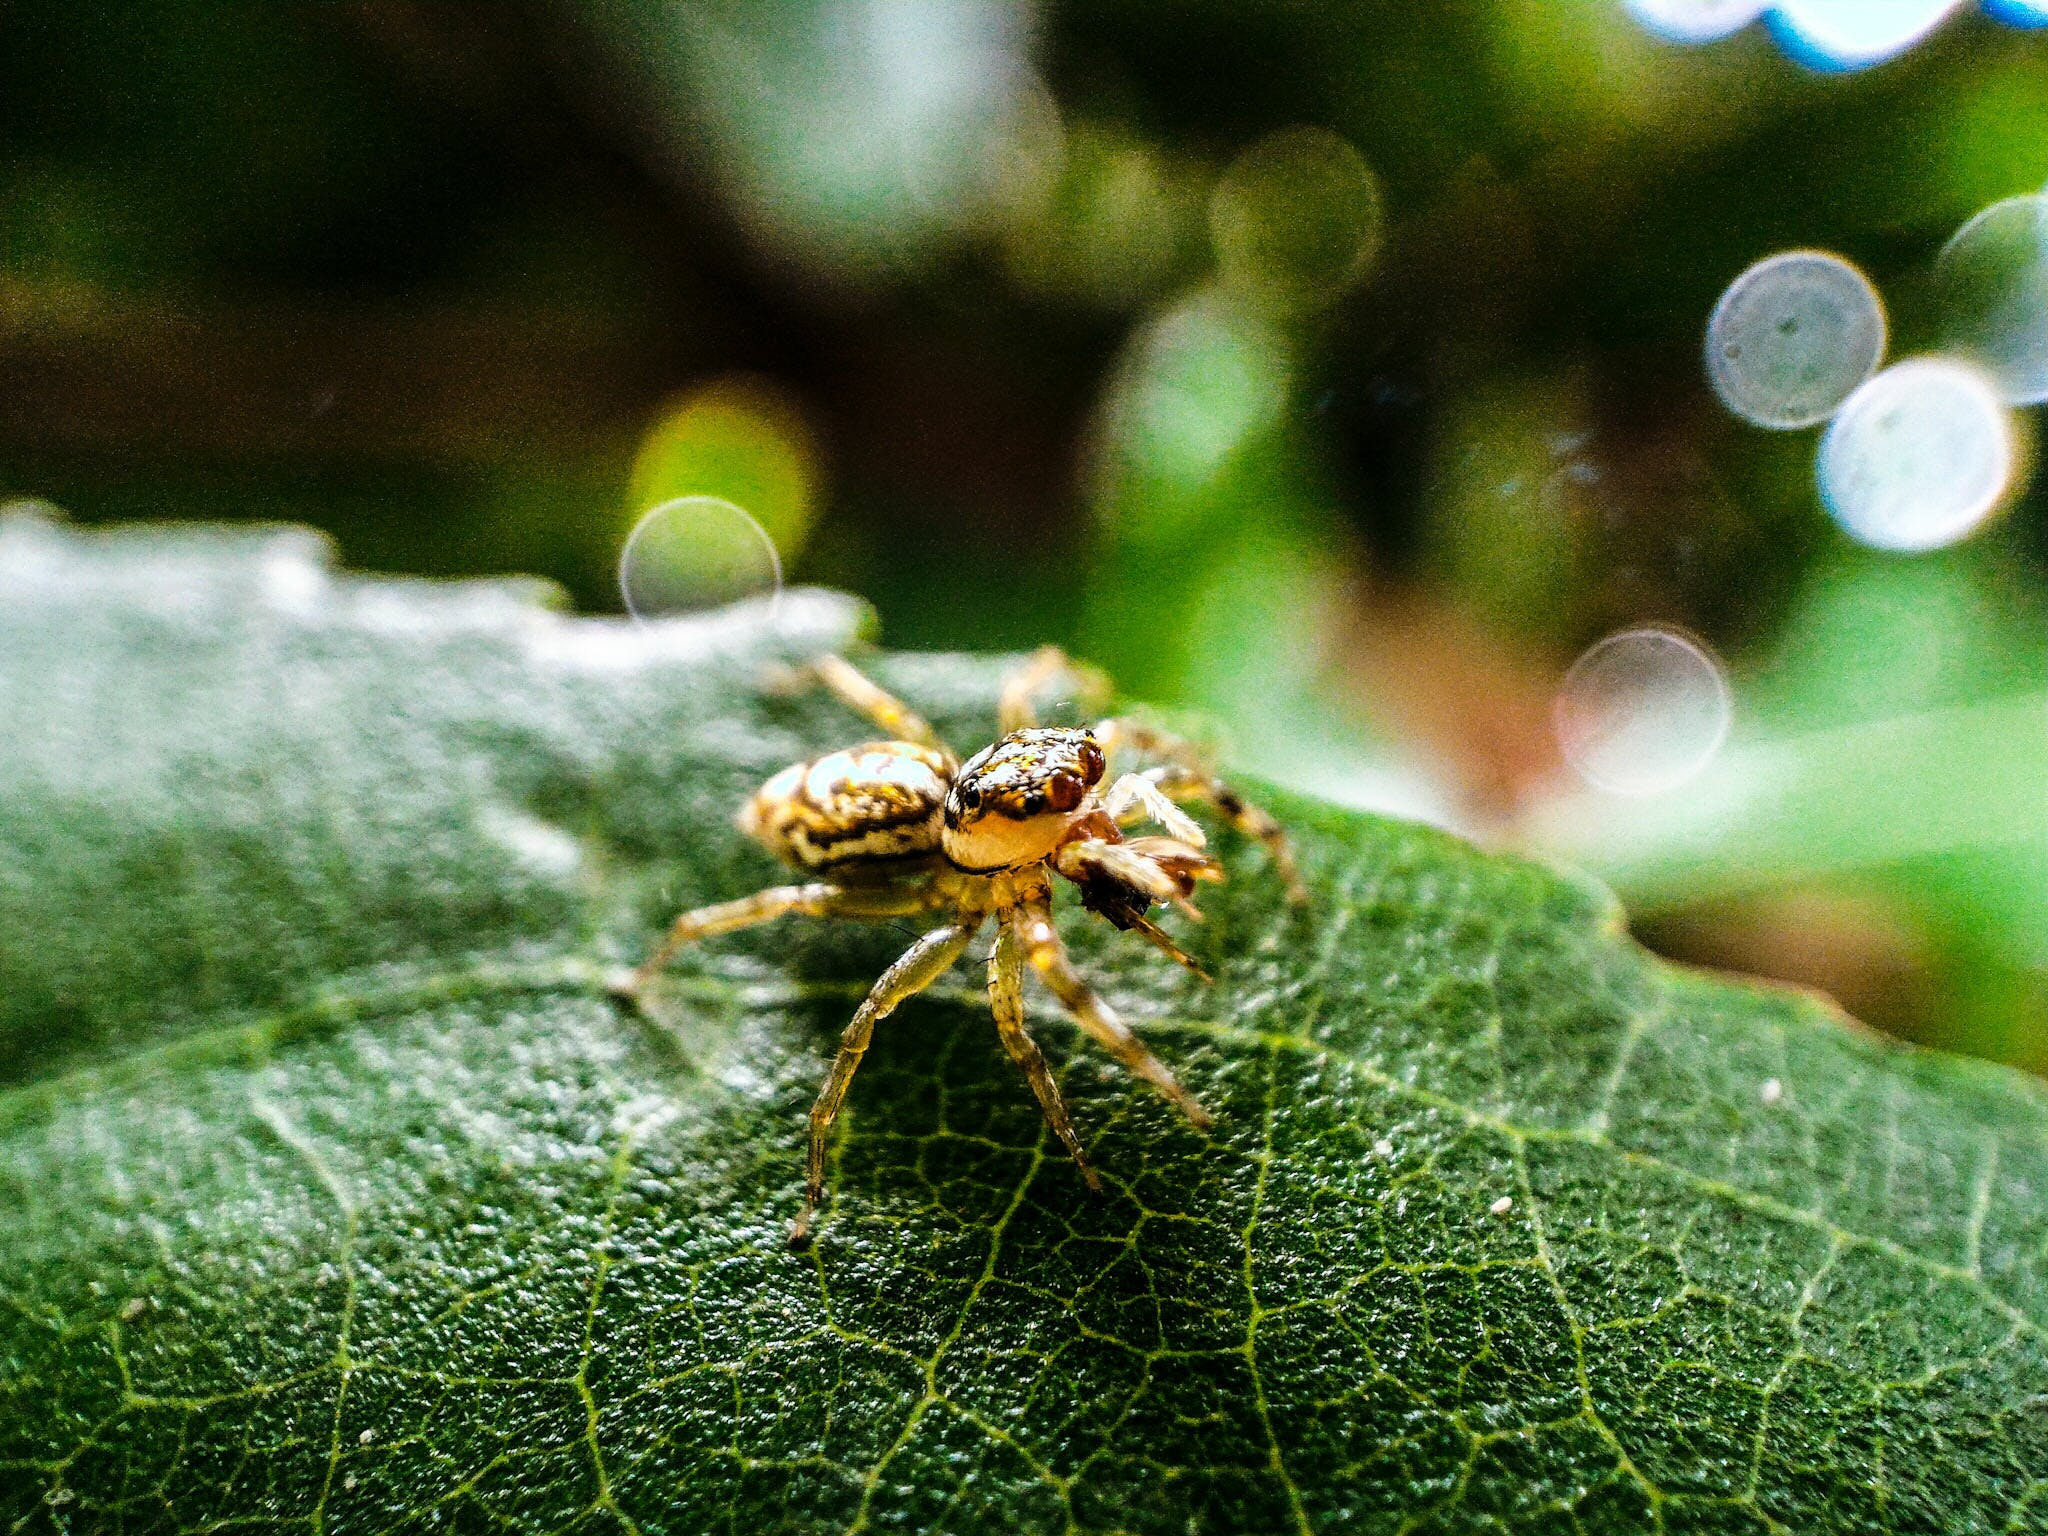 Macro Photography of Brown Jumping Spider on Green Leaf